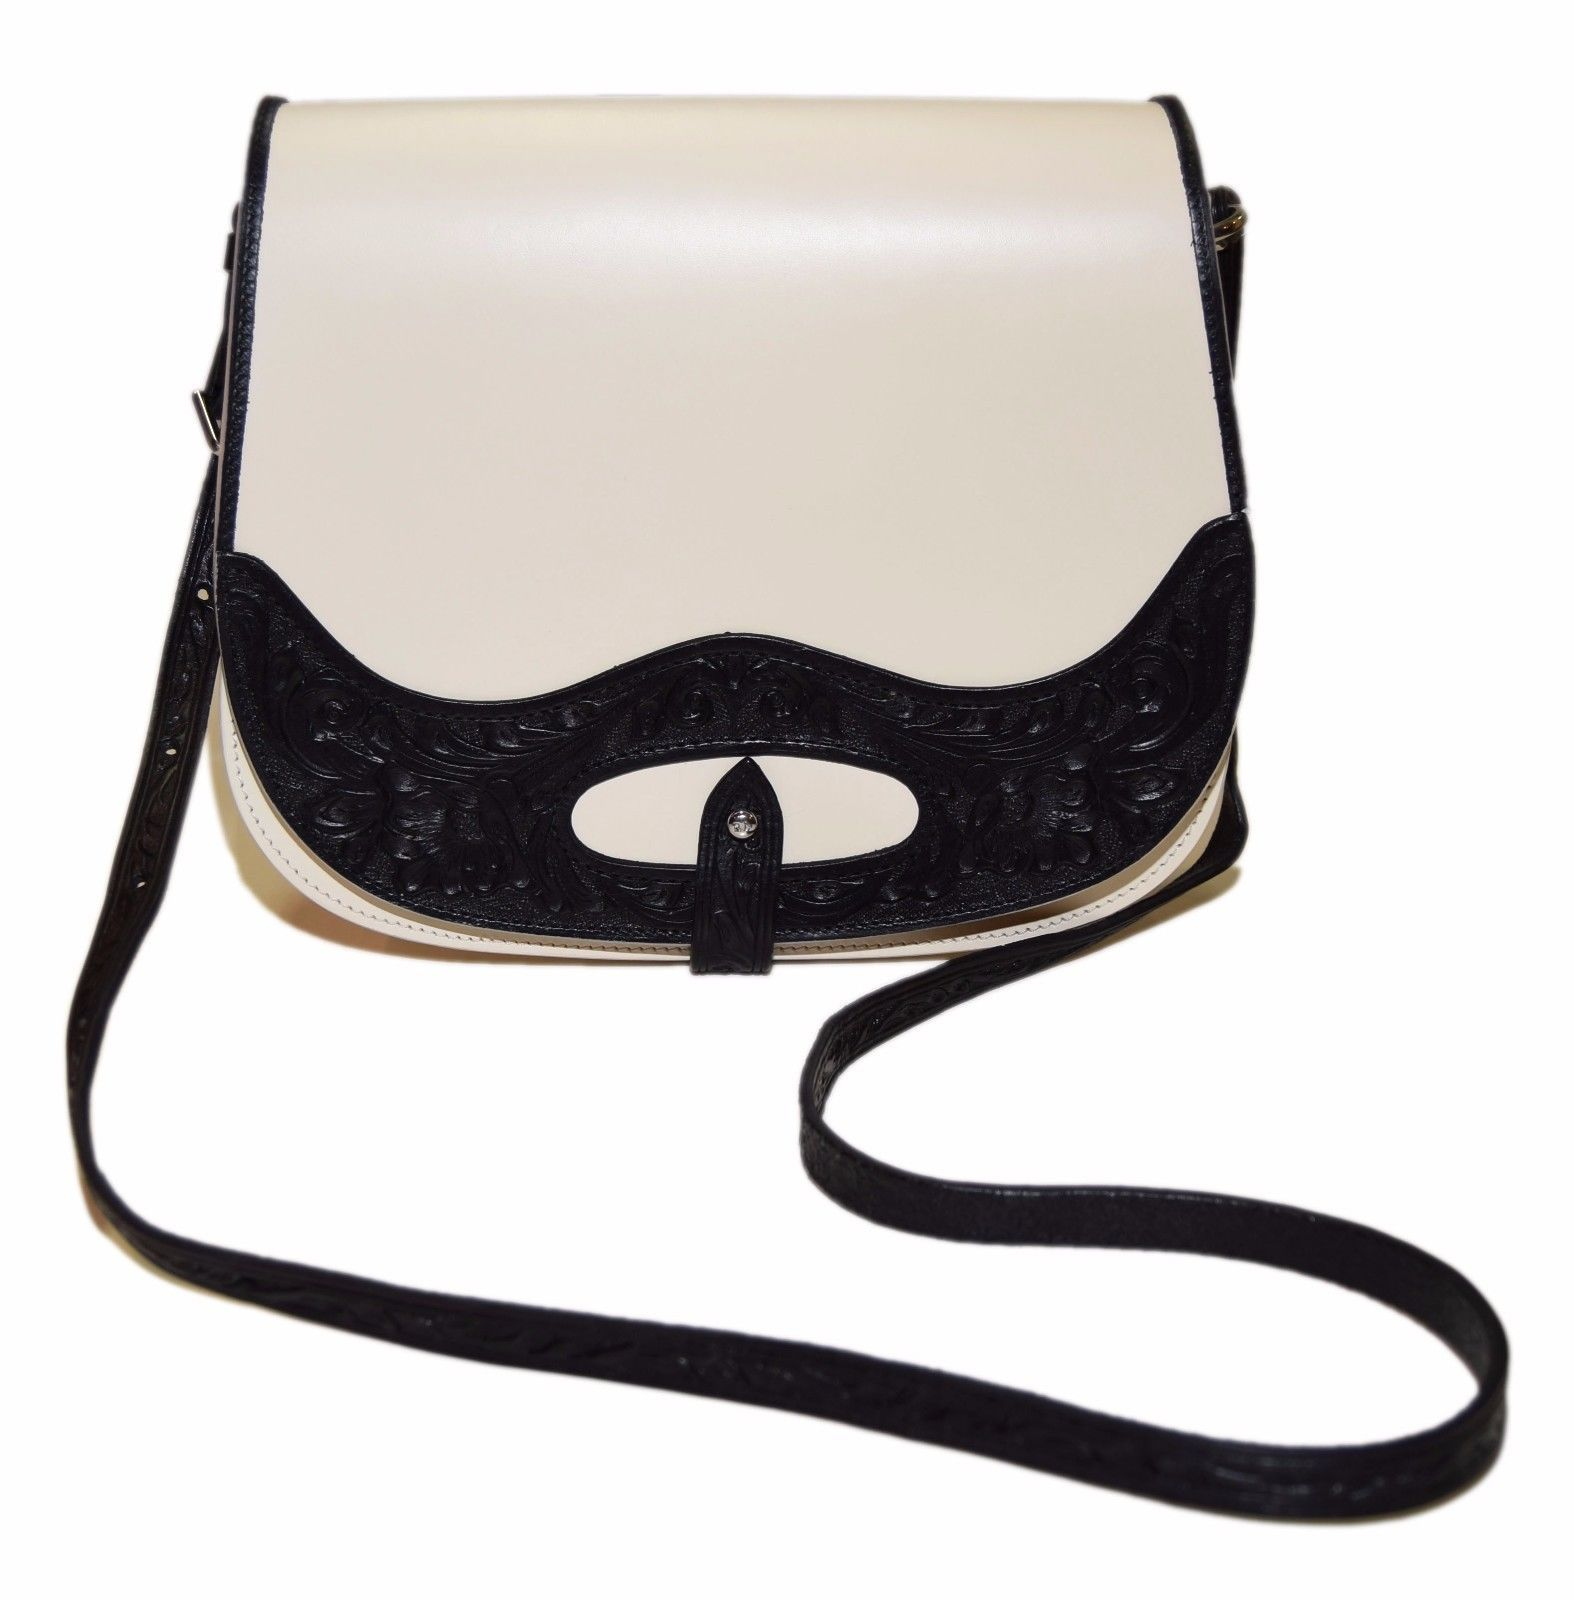 1a0ed10aa092 Polo Ralph Lauren Purple Label Collection Tooled Leather Black White Purse  Italy